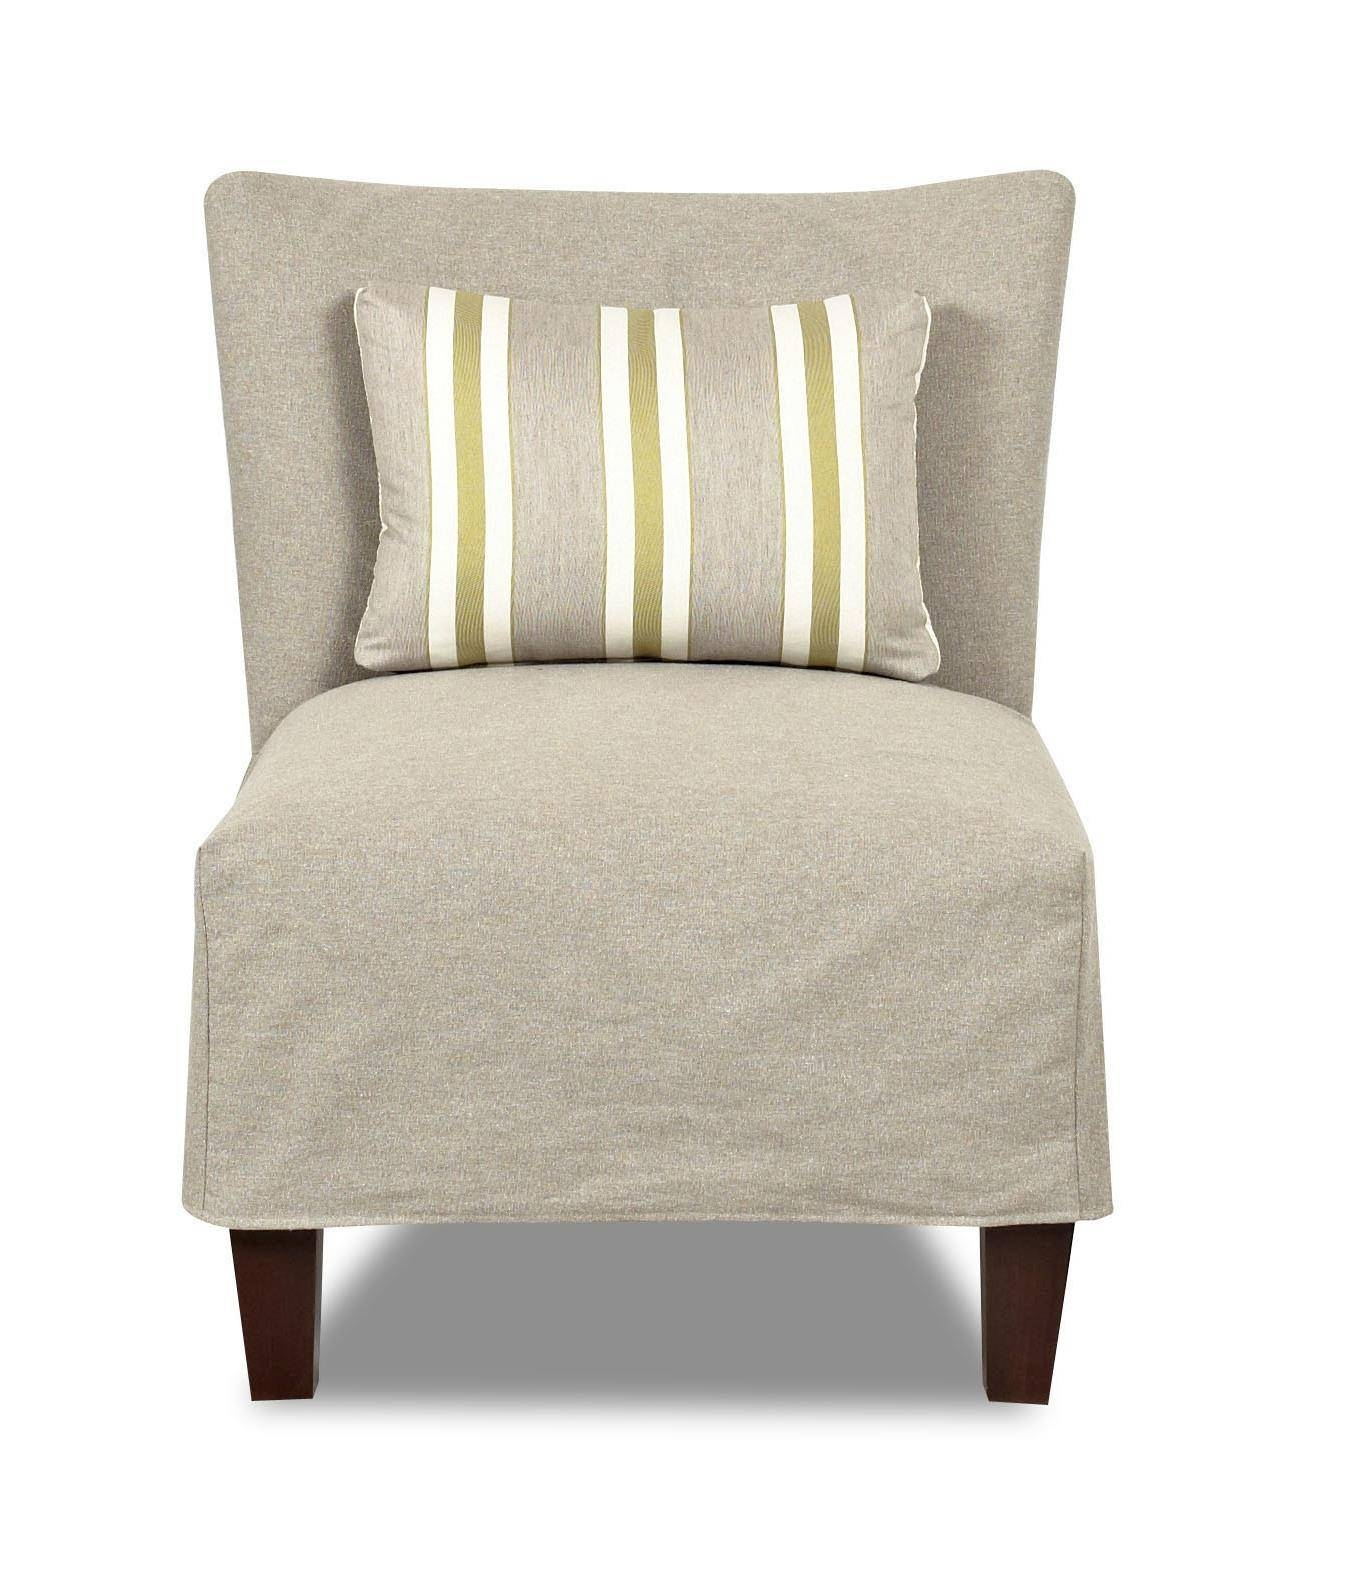 Klaussner Chairs And Accents Armless Accent Chair With Slipcover with Armless Slipcovers (Image 15 of 15)